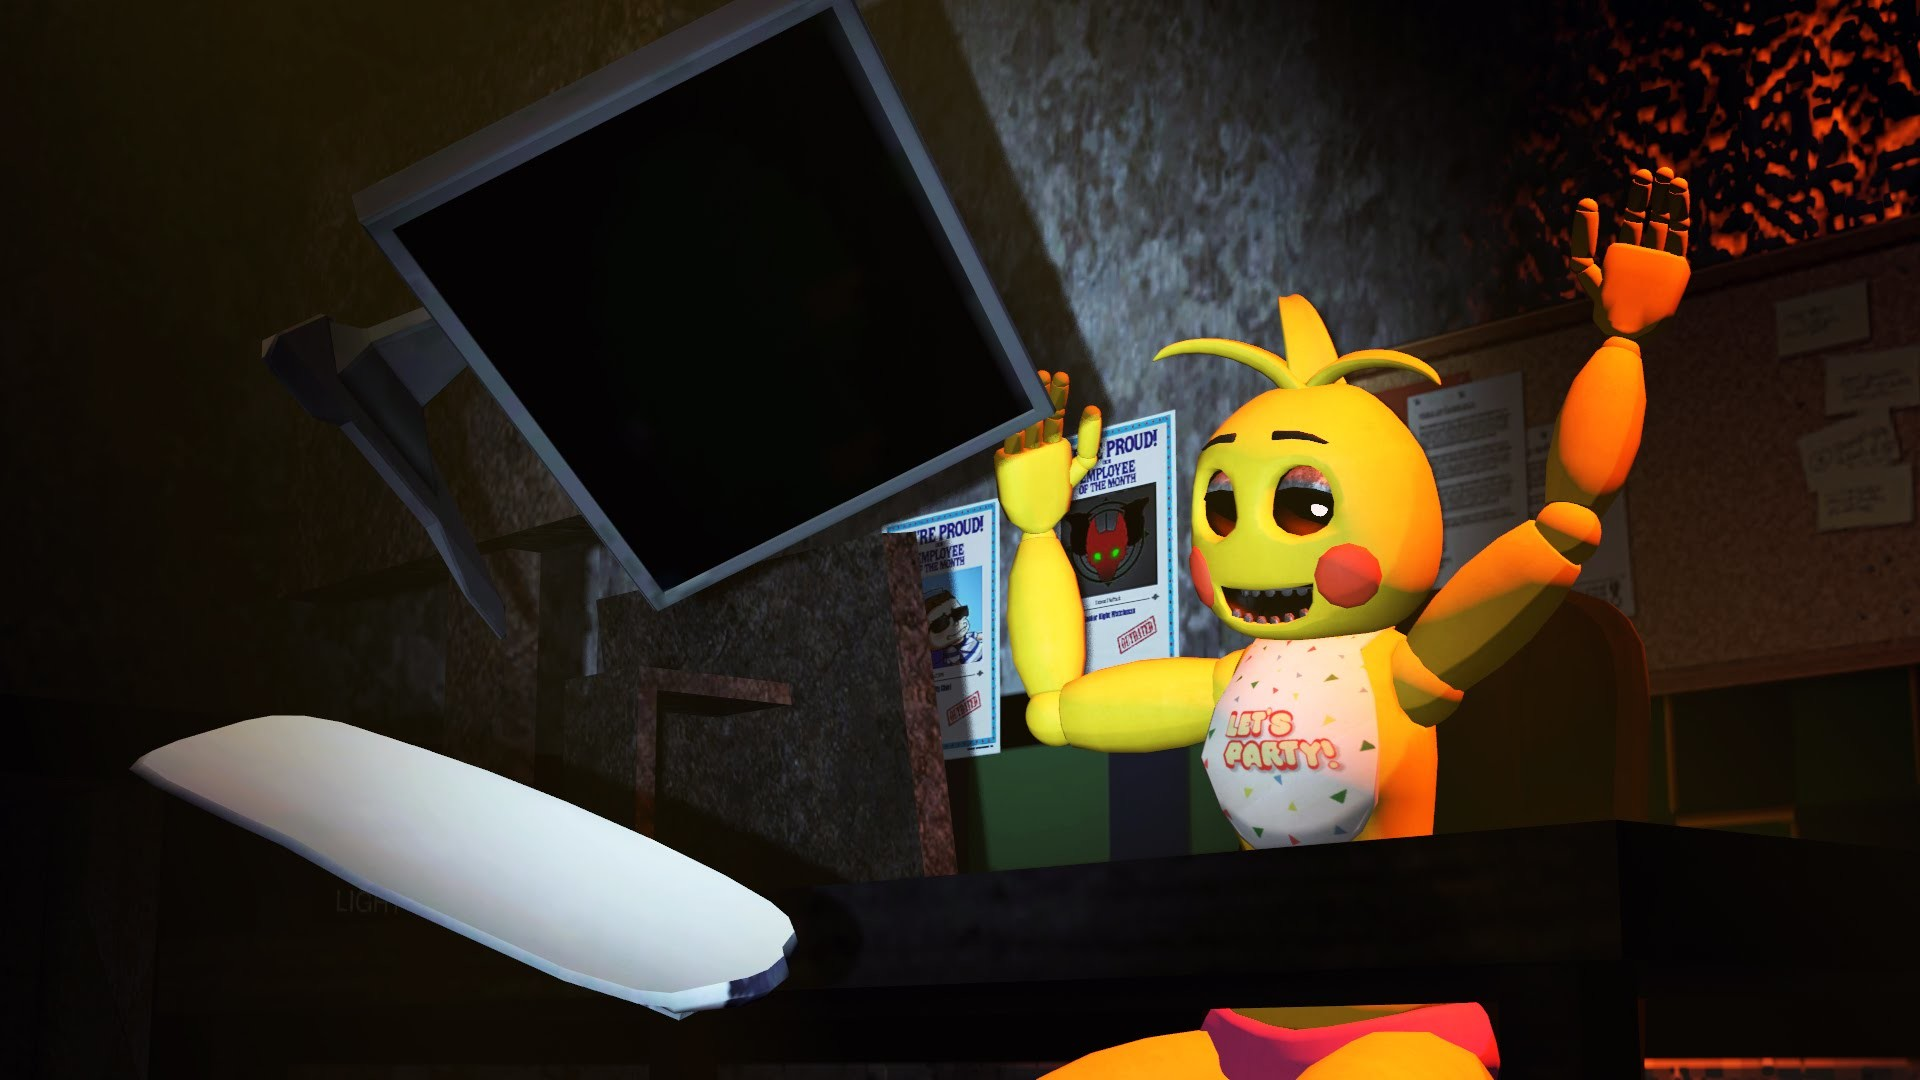 1920x1080 [SFM FNAF2] Toy Chica Reacts to Five Night's at Freddy's 4 Teaser - YouTube